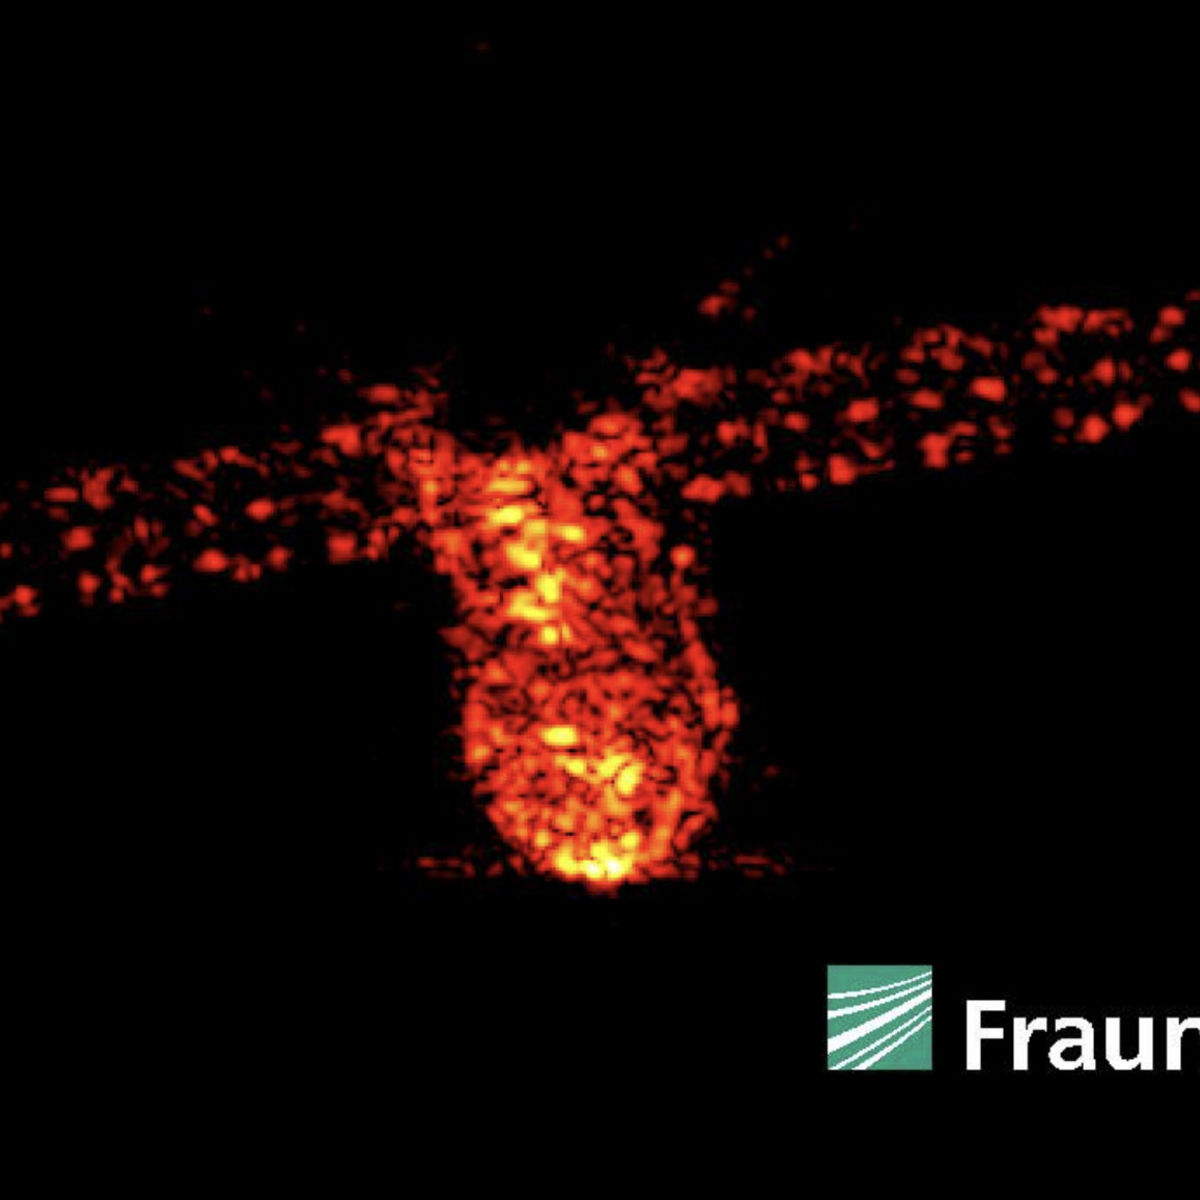 An image of Tiangong-1 shortly before it re-entered made using radar from the ground. Credit: Fraunhofer FHR